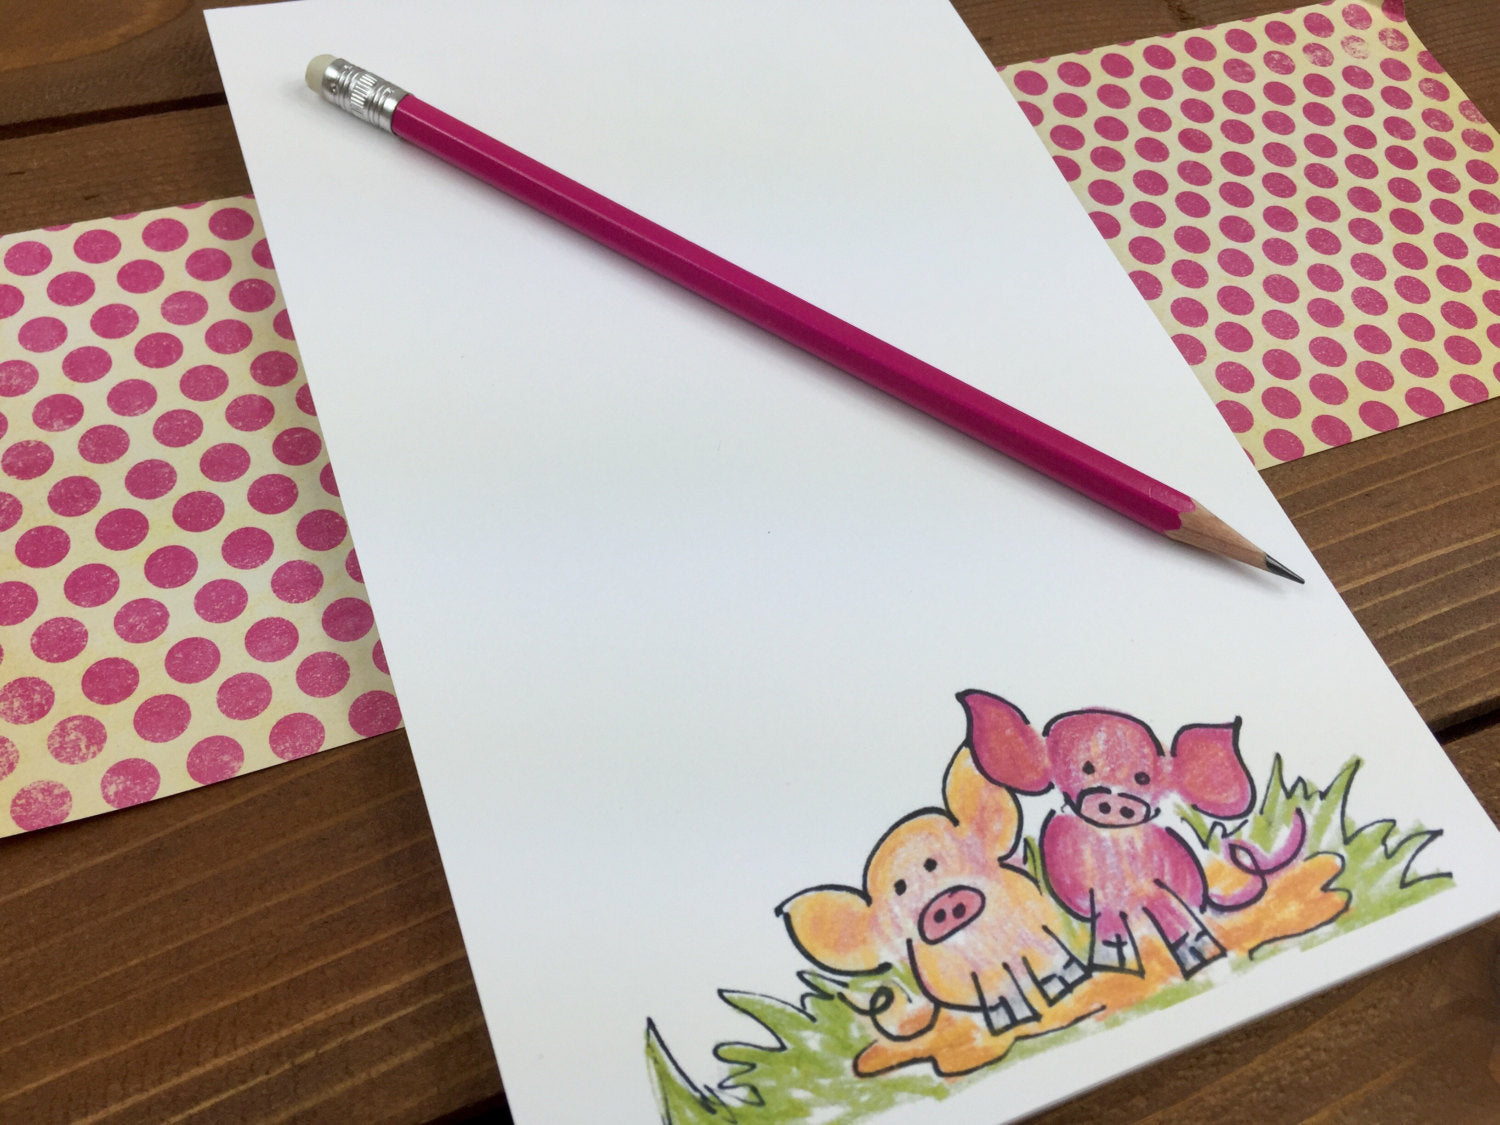 Pig Notepad, Custom Notepad, Pig Decor, Gift for Kids Gift, Pig Party, Personalized Gift, Animal Lover Gift, Cute Pig - 5.5 x 8.5